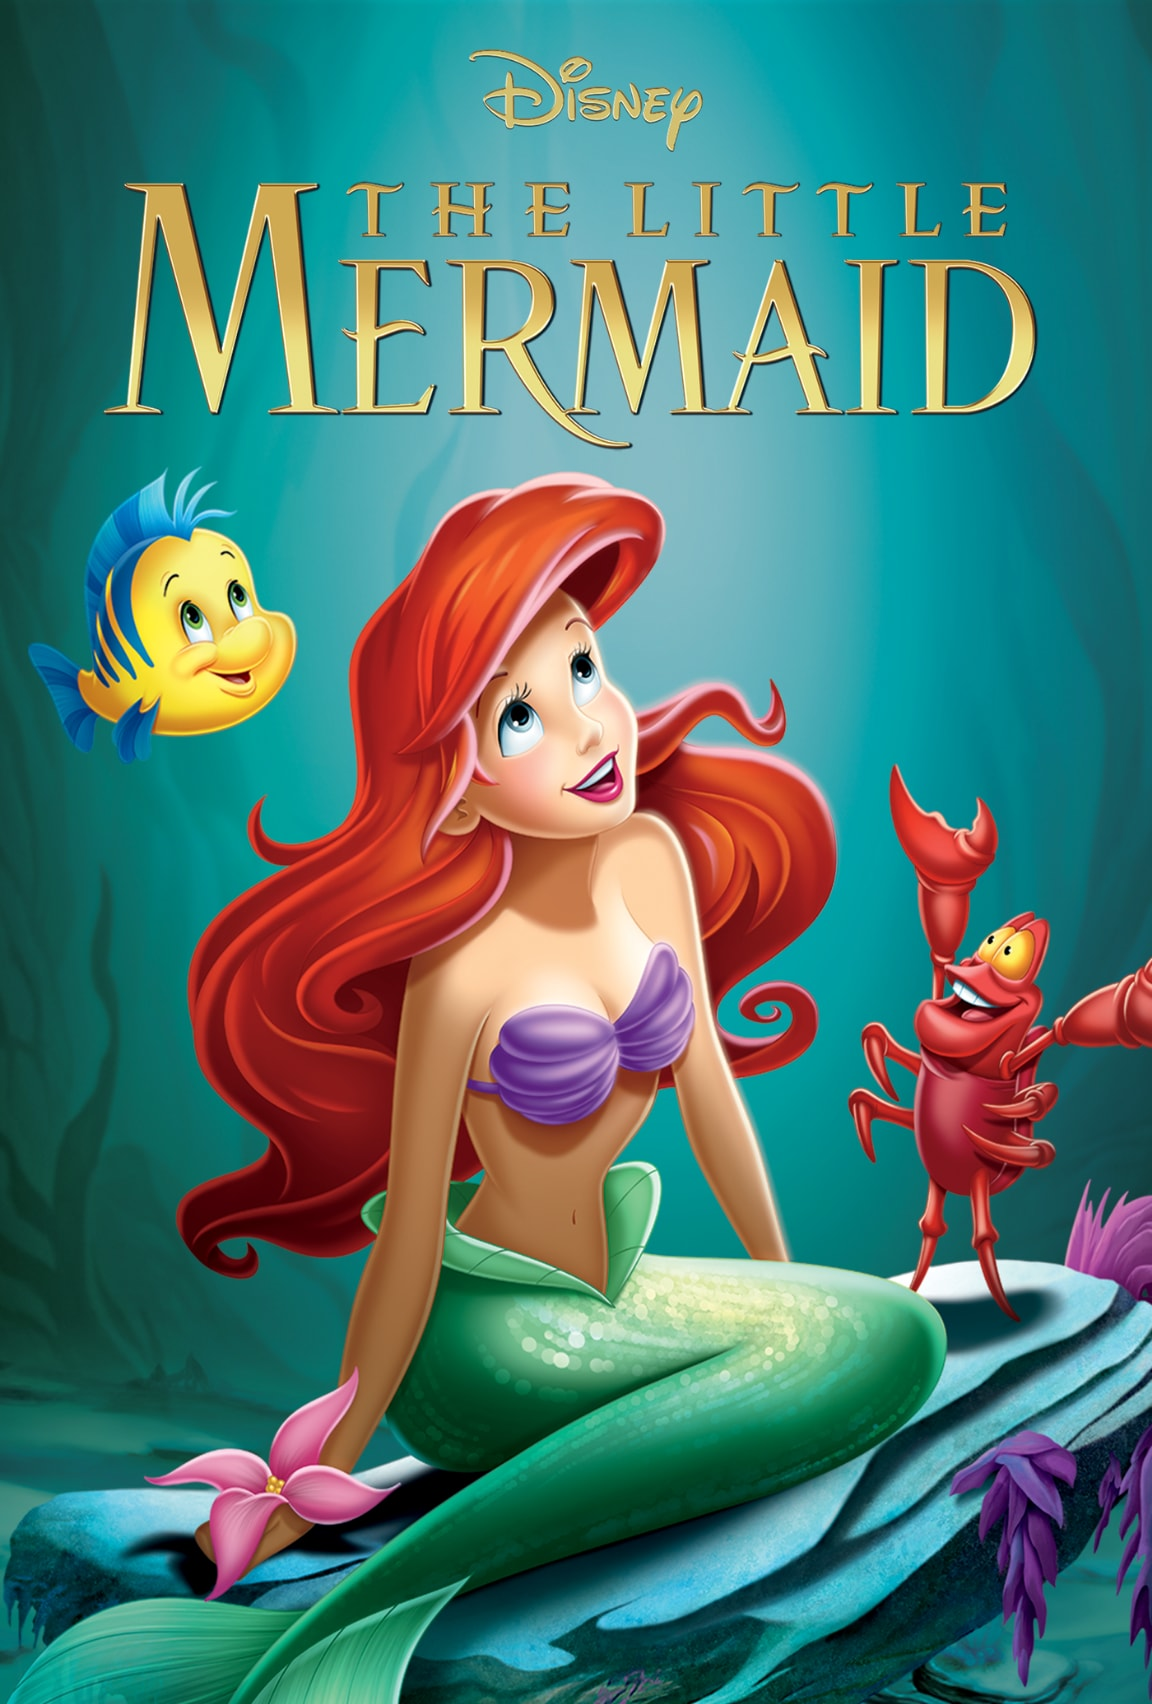 The Little Mermaid on Disney Plus